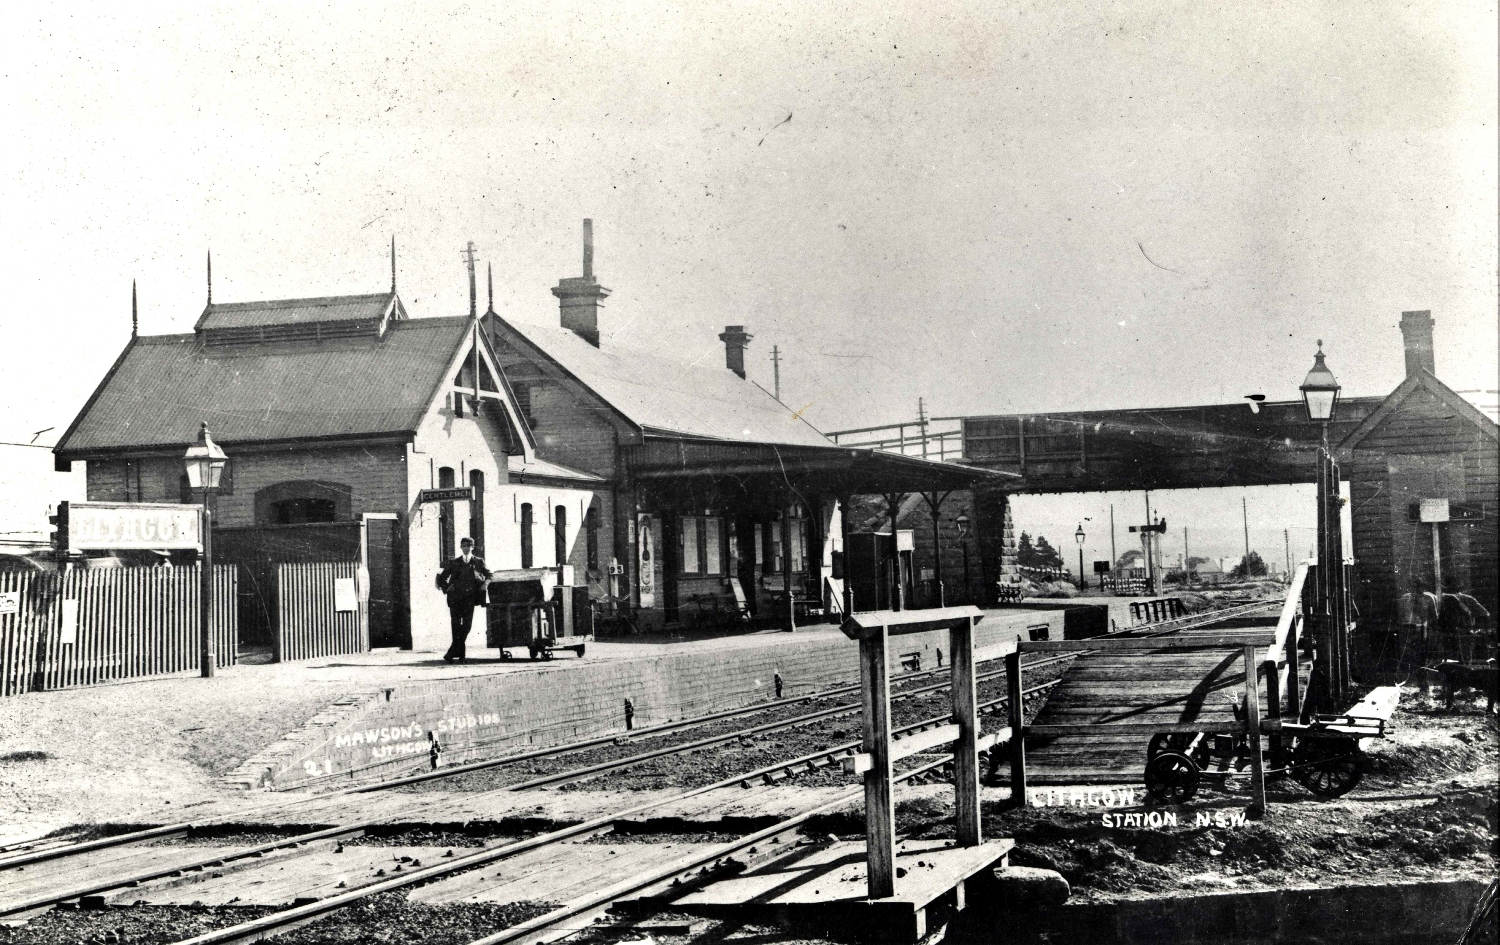 Railway Station - Lithgow